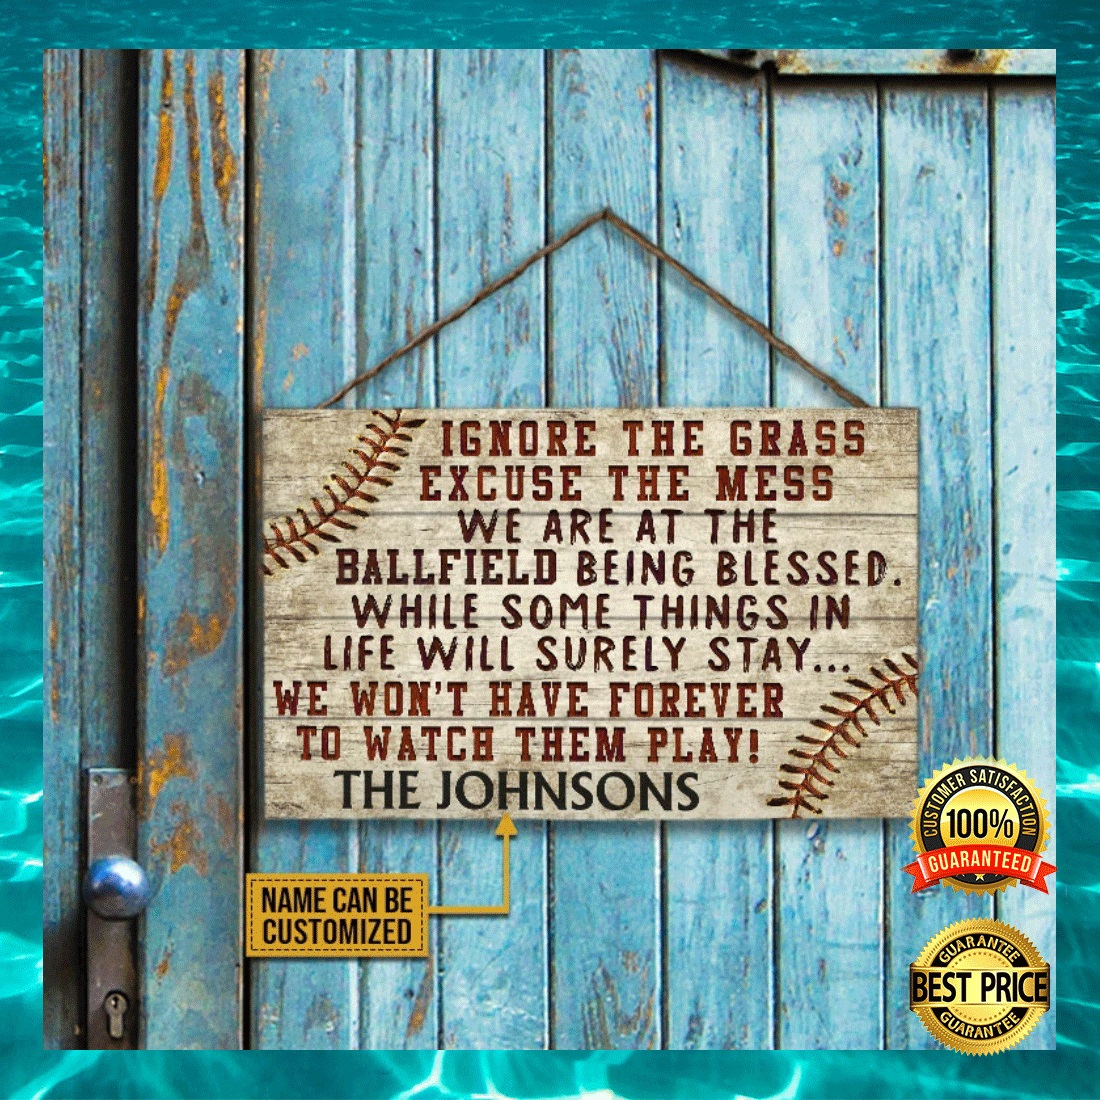 PERSONALIZED IGNORE THE GRASS EXCUSE THE MESS WE ARE AT THE BALLFIELD BEING BLESSED DOOR SIGN 5